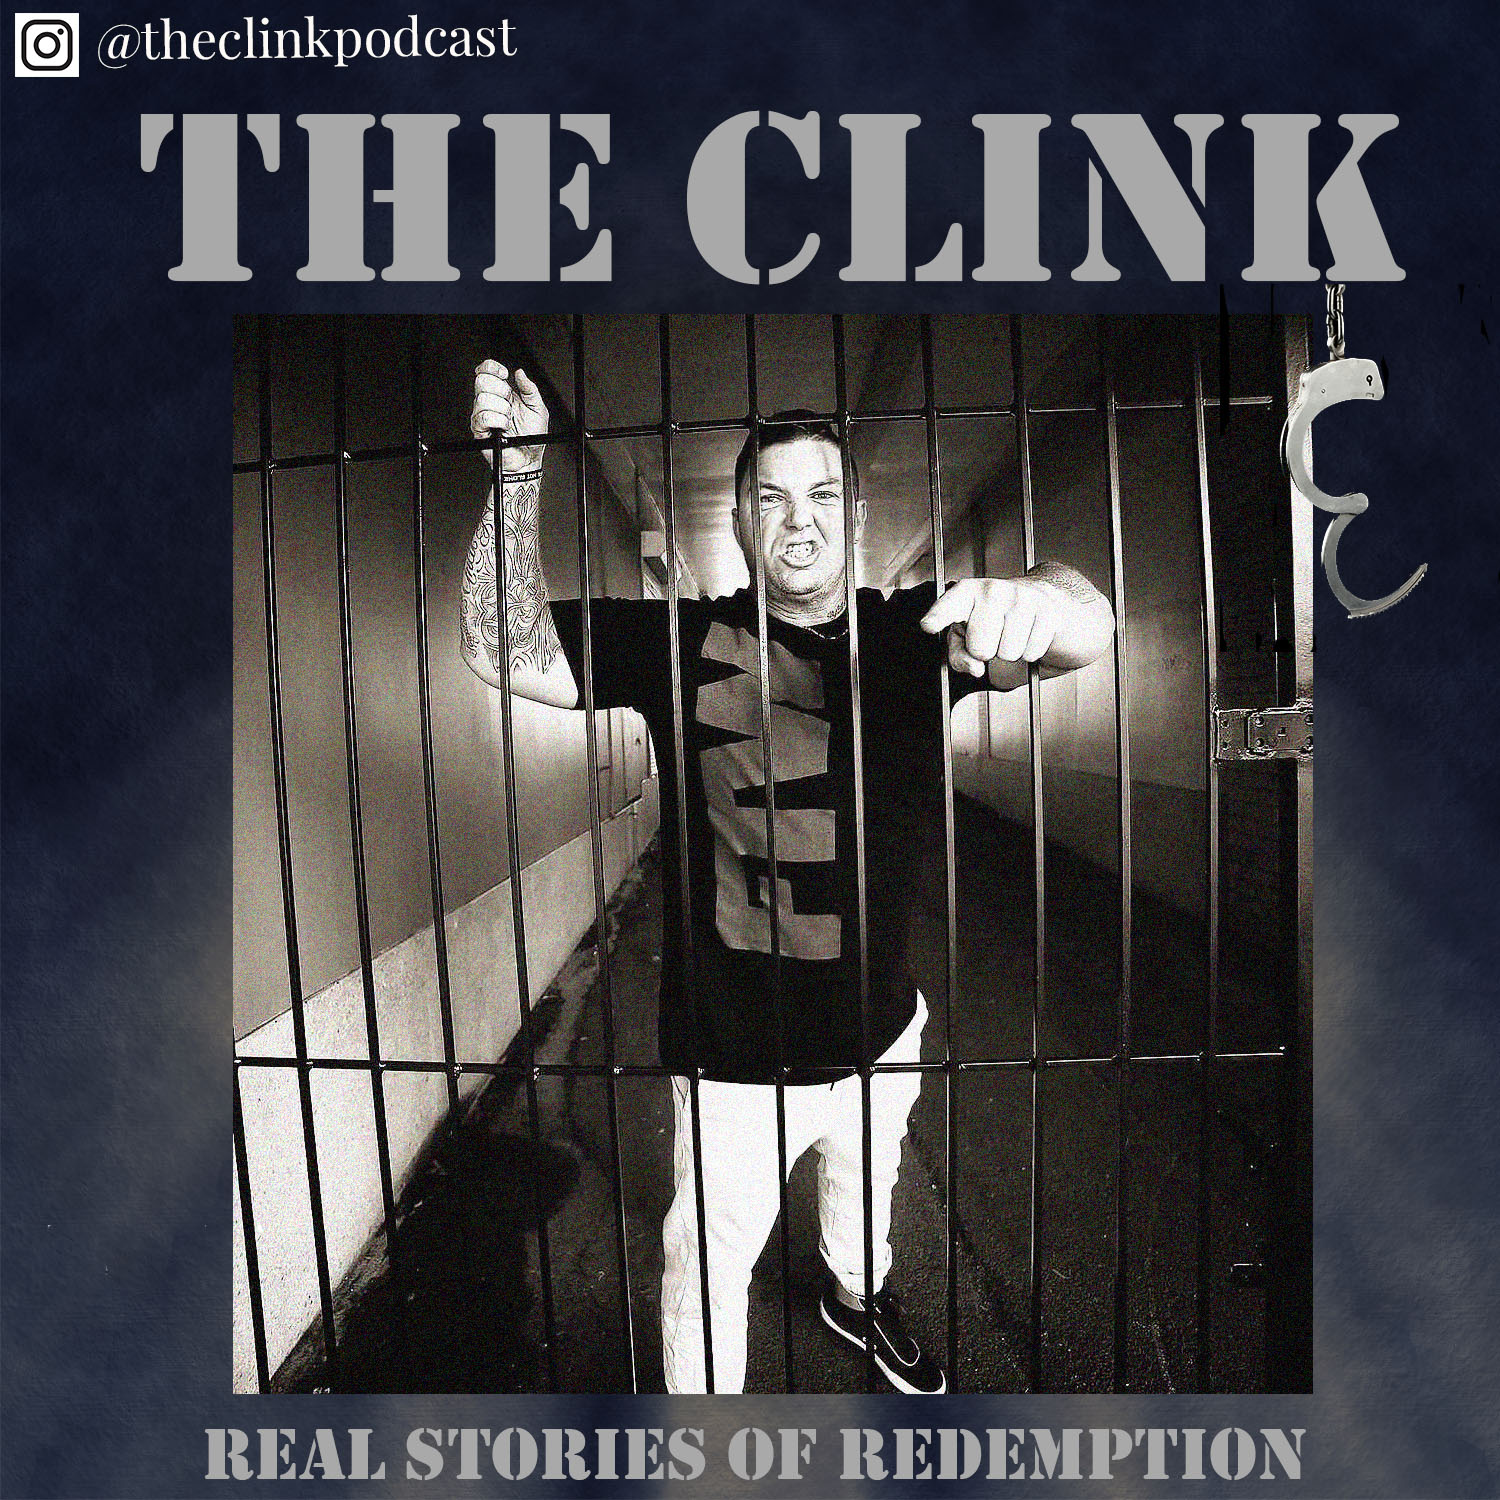 he Clink is a podcast that deals with real life stories of redemption.  Hosted by Brent Simpson who is a former bikie enforcer who sold illicit drugs before turning his life around and dedicating his life to charity.